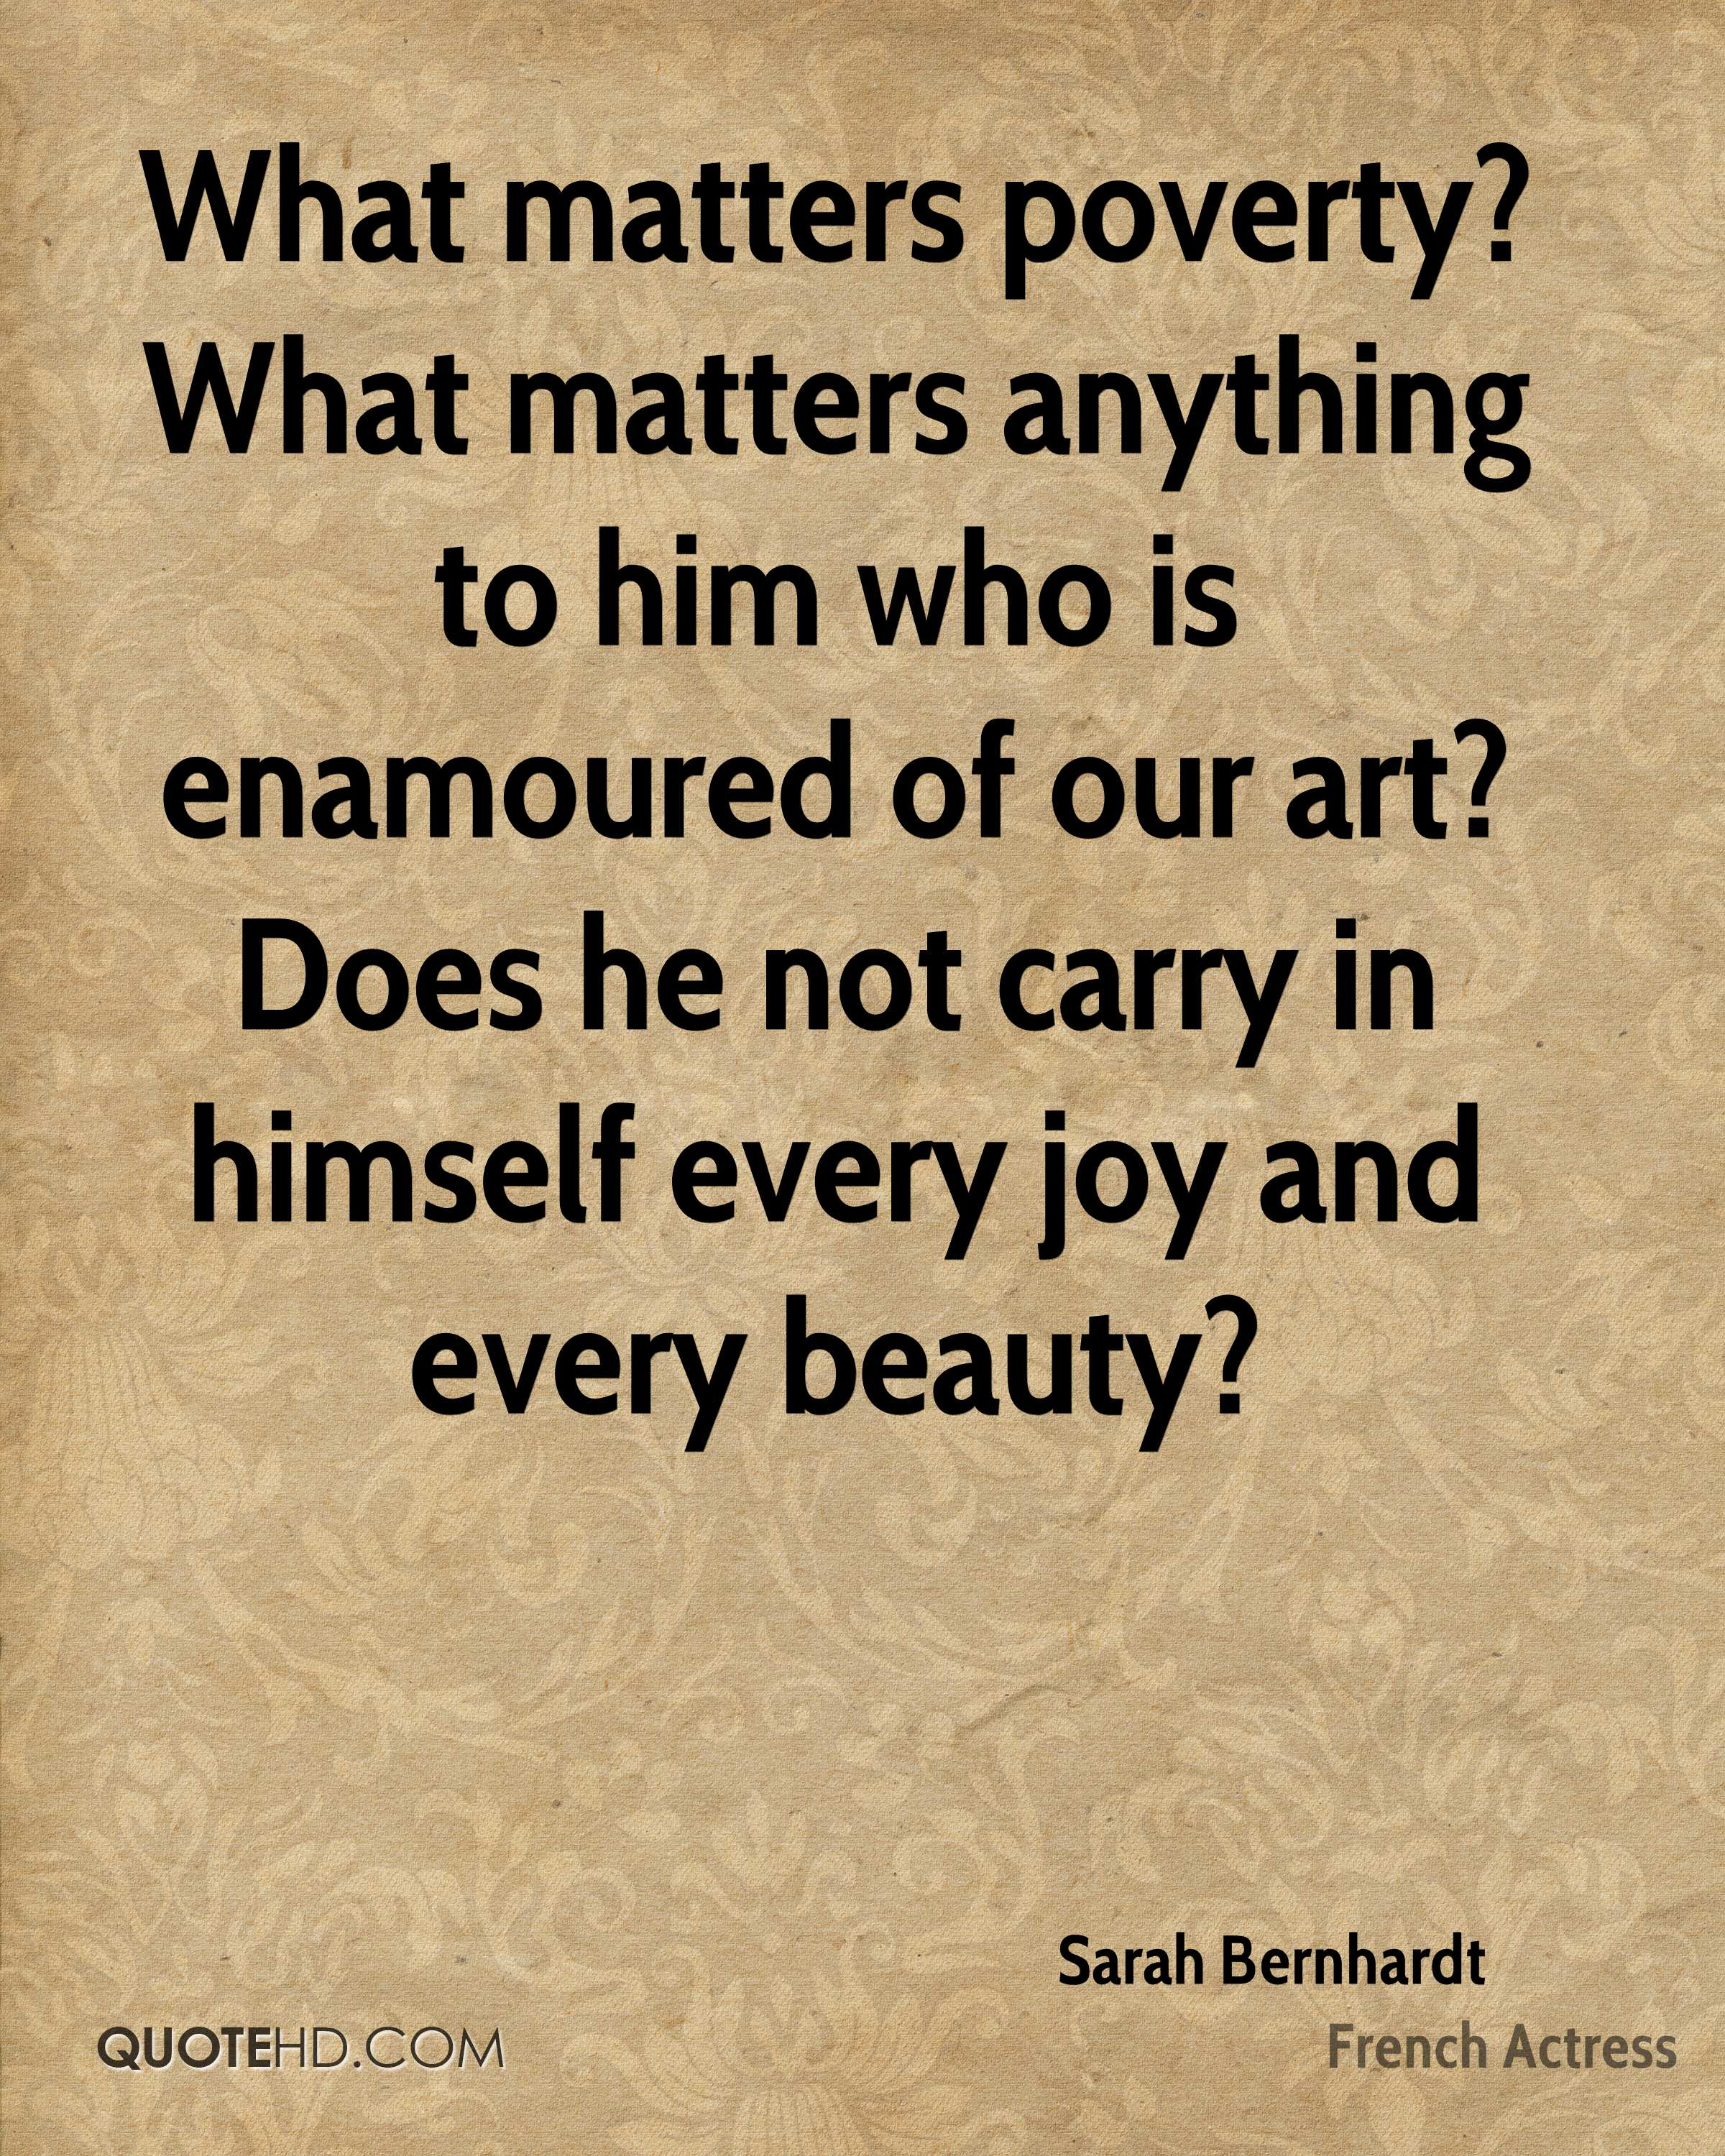 What matters poverty? What matters anything to him who is enamoured of our art? Does he not carry in himself every joy and every beauty?